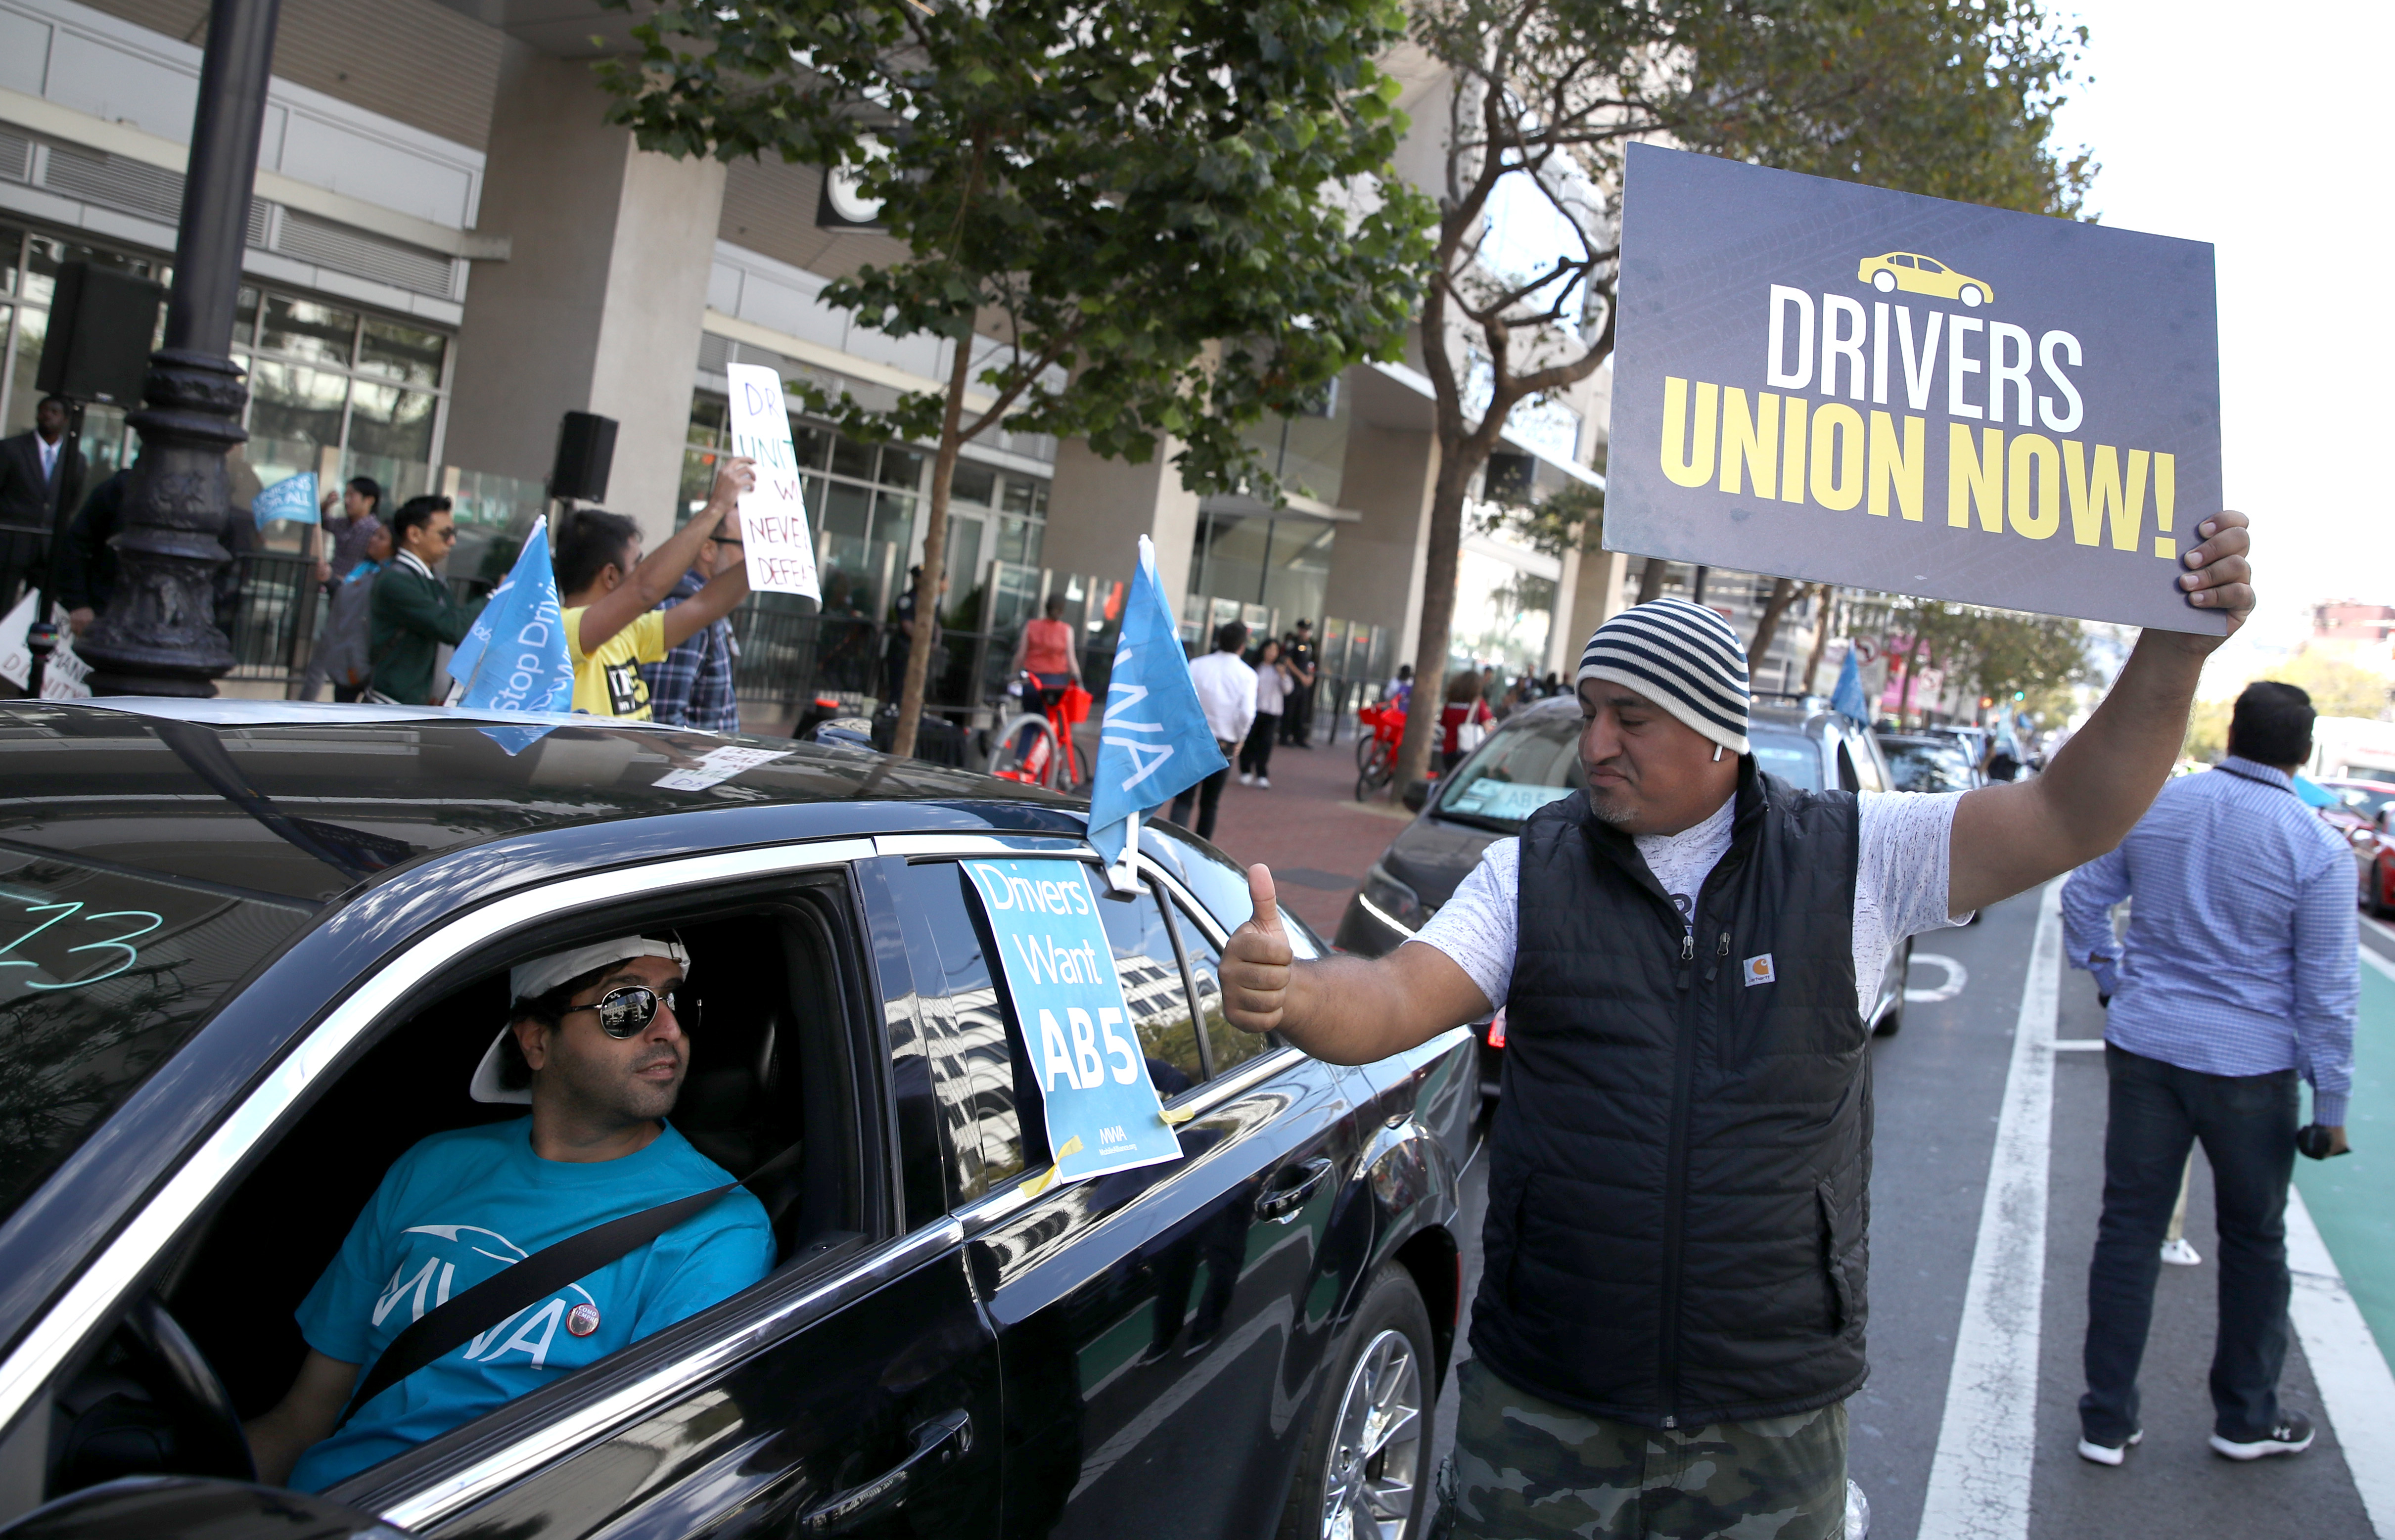 """Uber drivers hold signs reading """"Drivers union now!"""" on the street outside of Uber's headquarters on August 27, 2019, in San Francisco, California."""